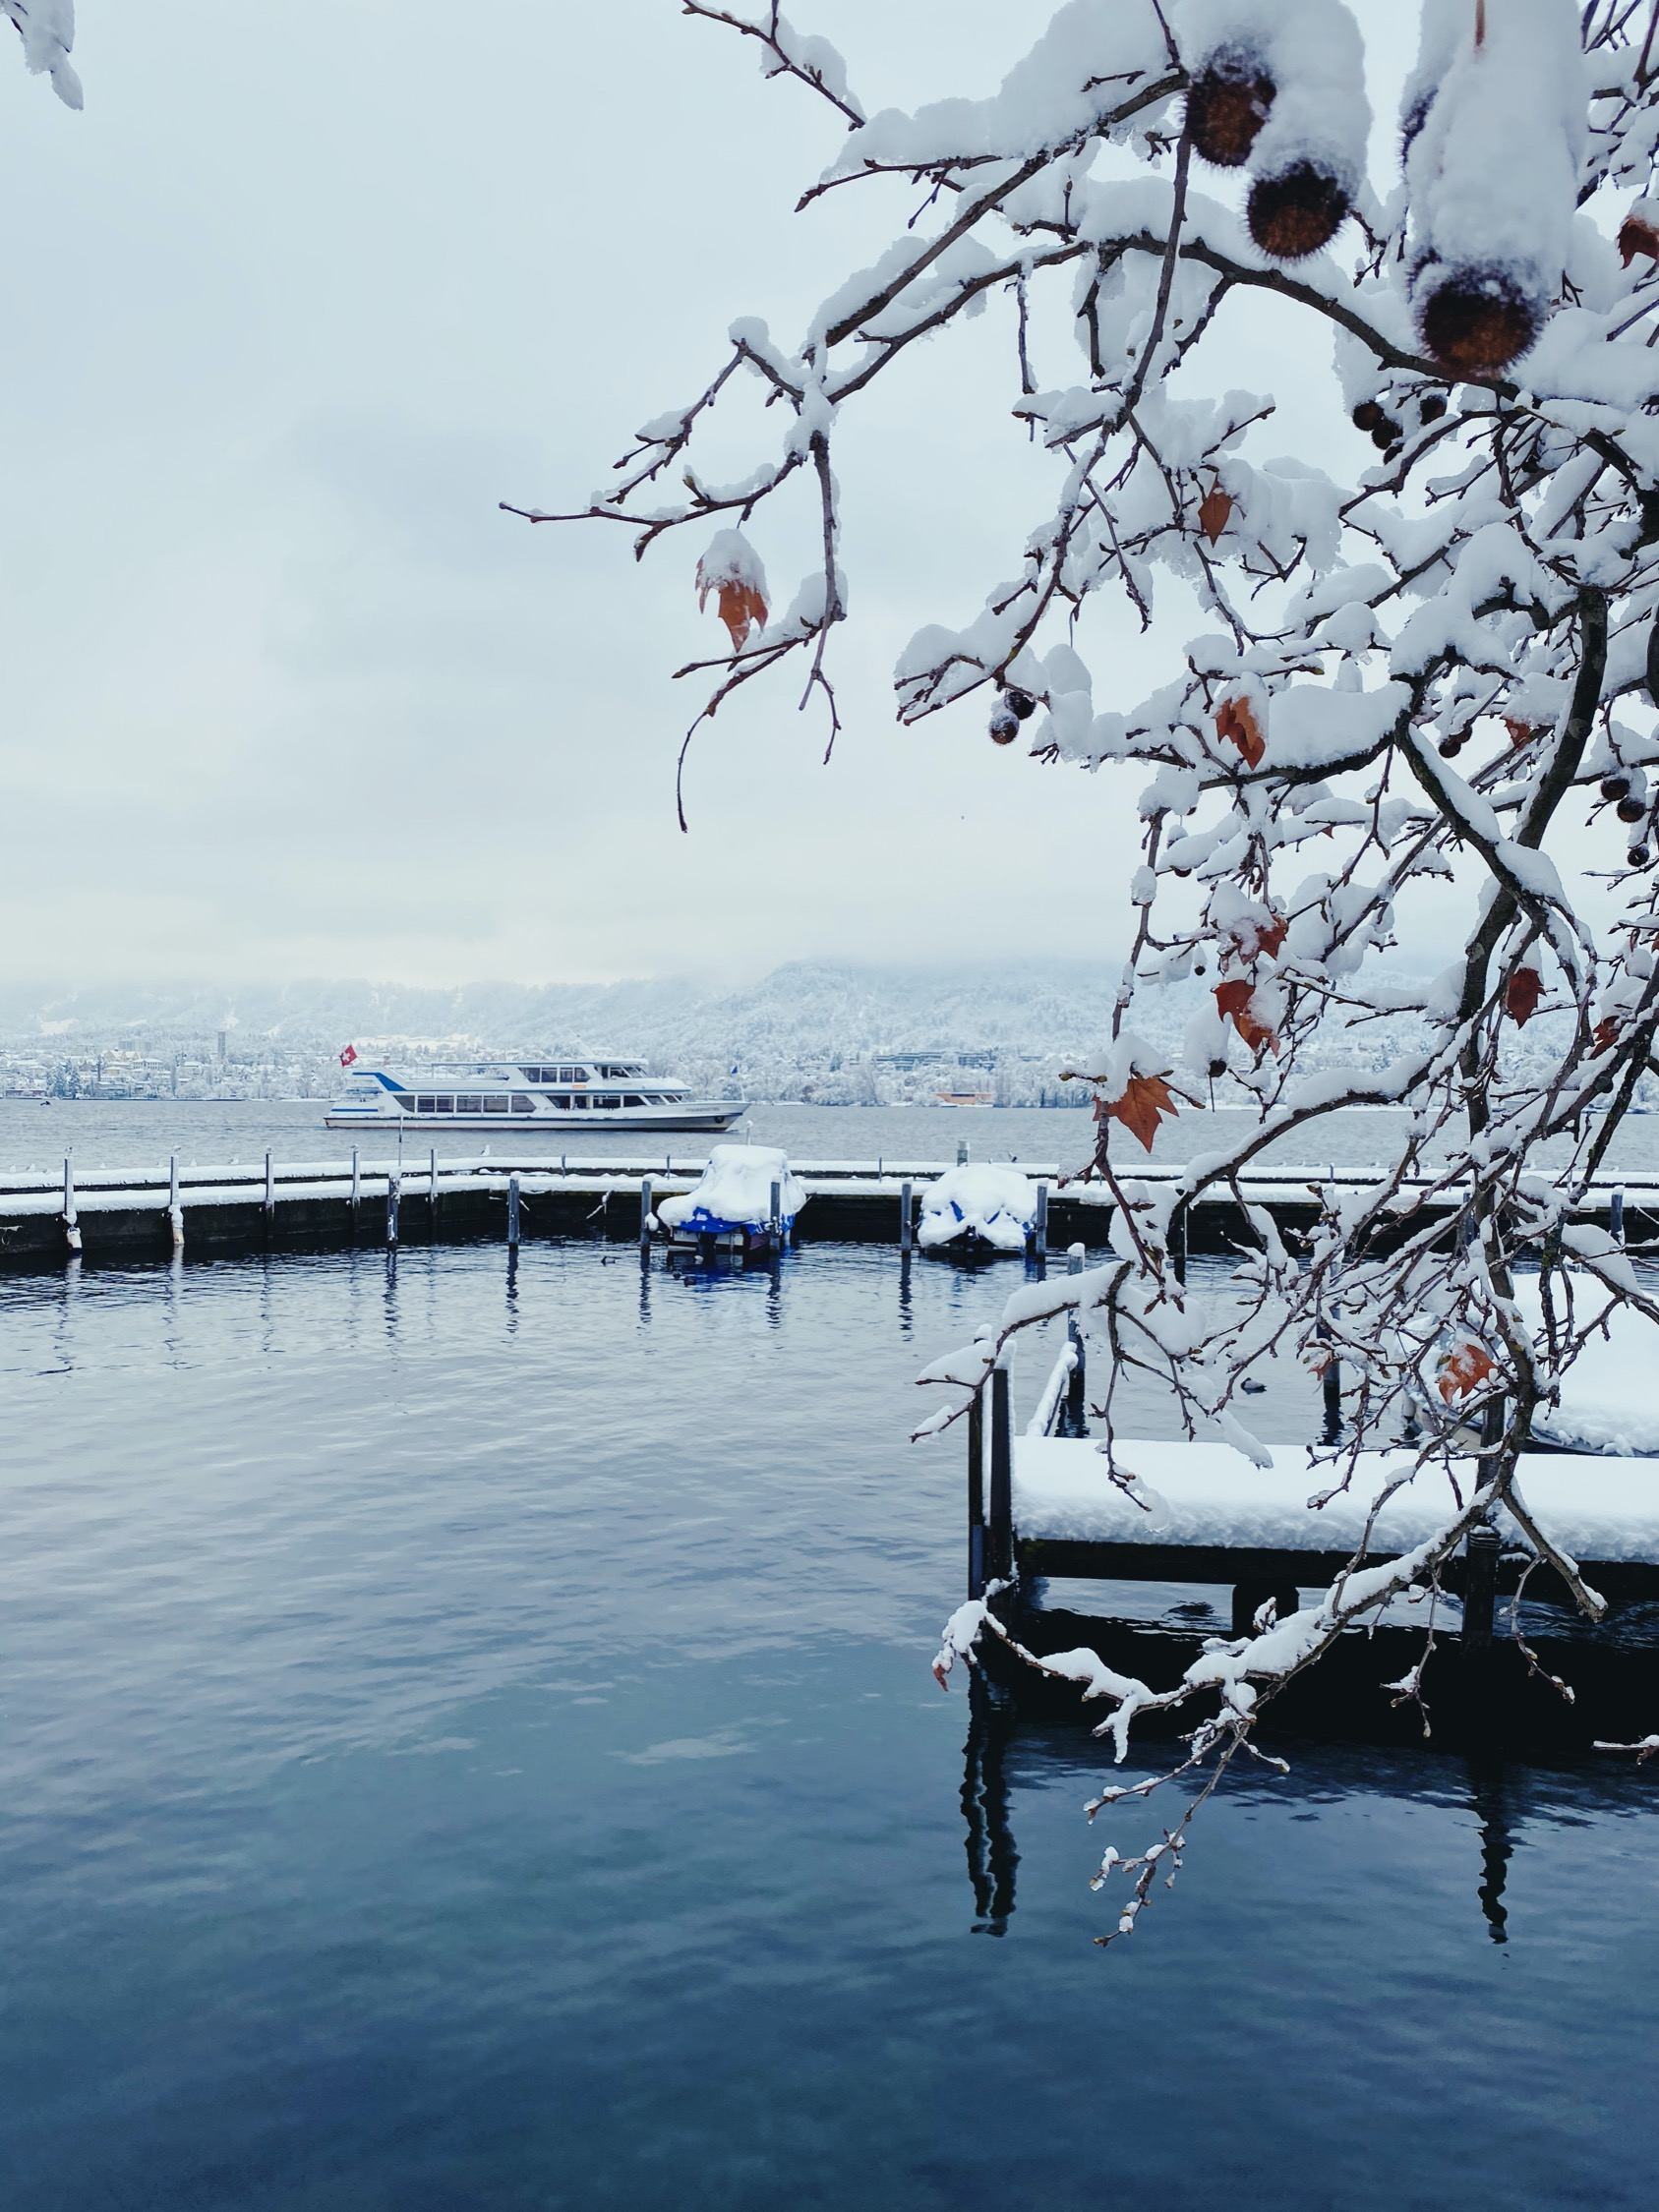 On the shores of Zurich Lake (Seefeld Promenade) during the record snowfall, January 2021